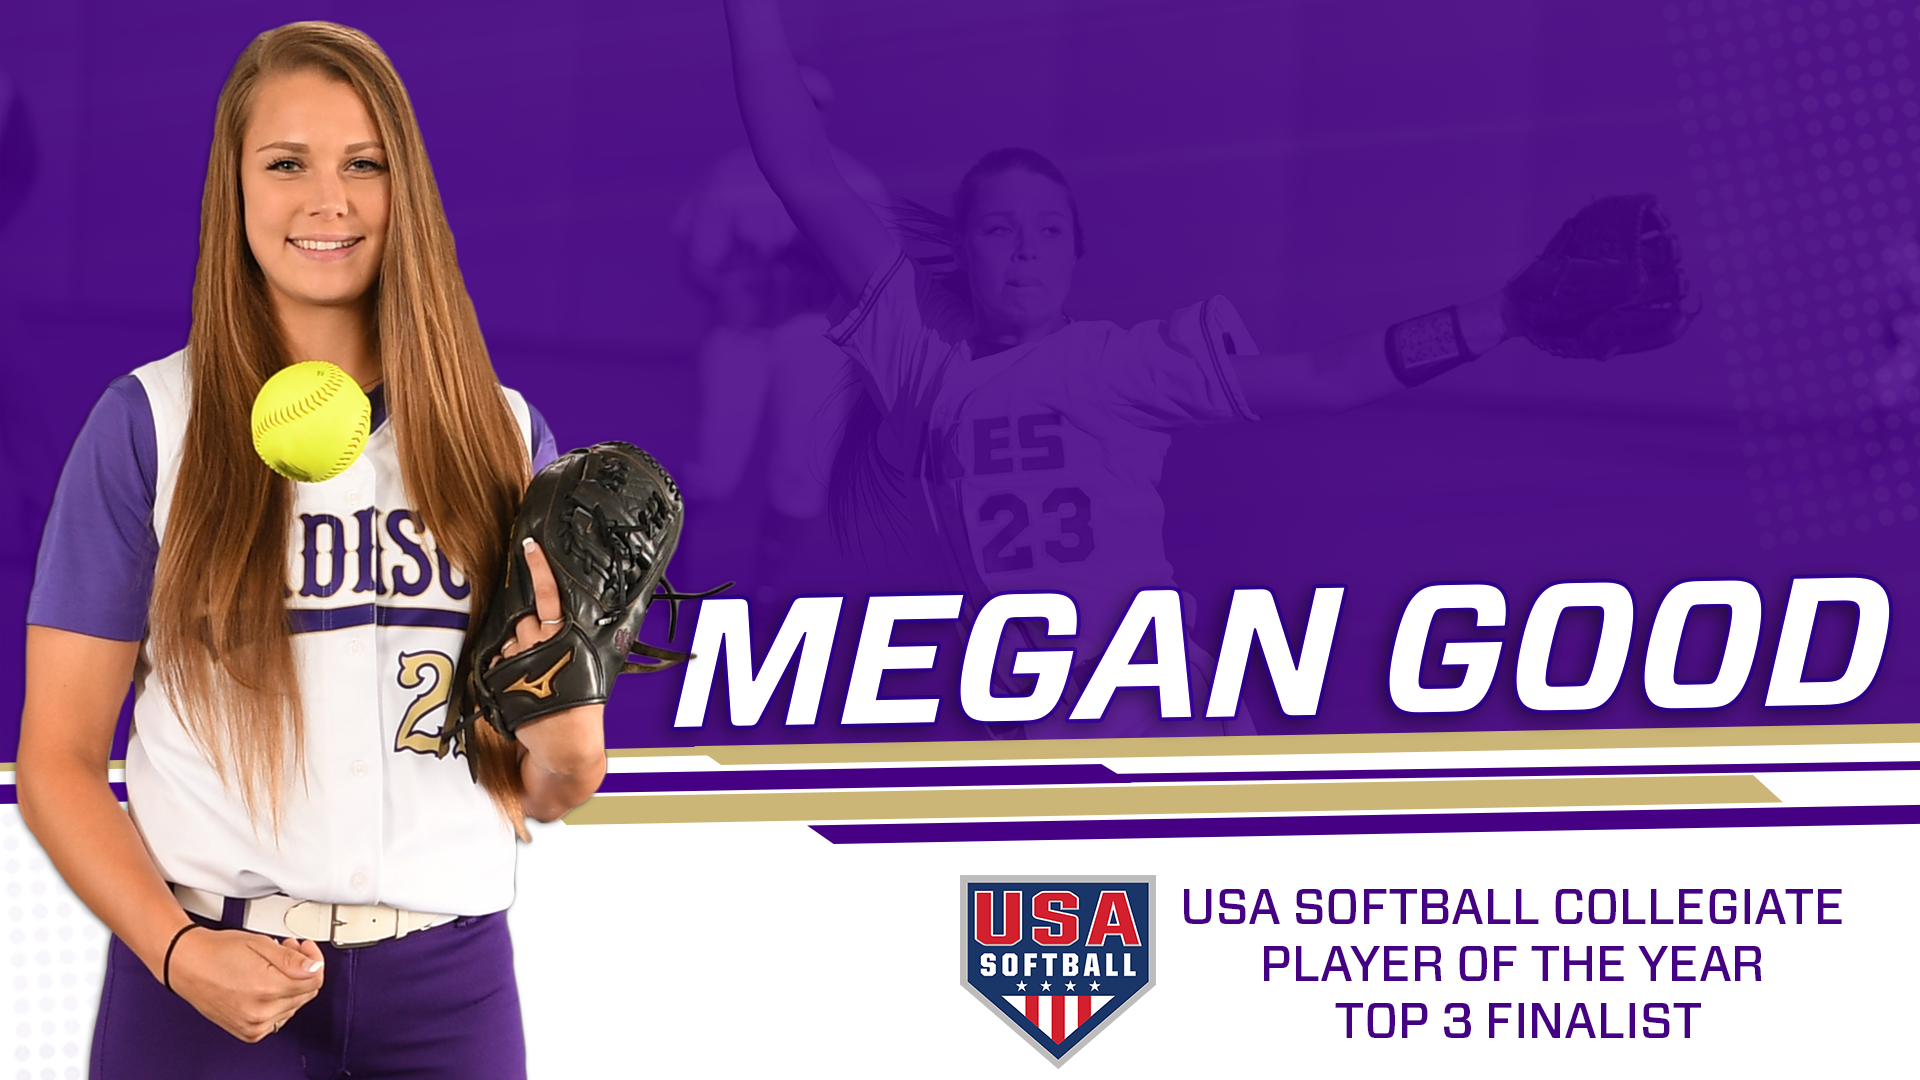 Softball: Good Named Top 3 Finalist for Player of the Year